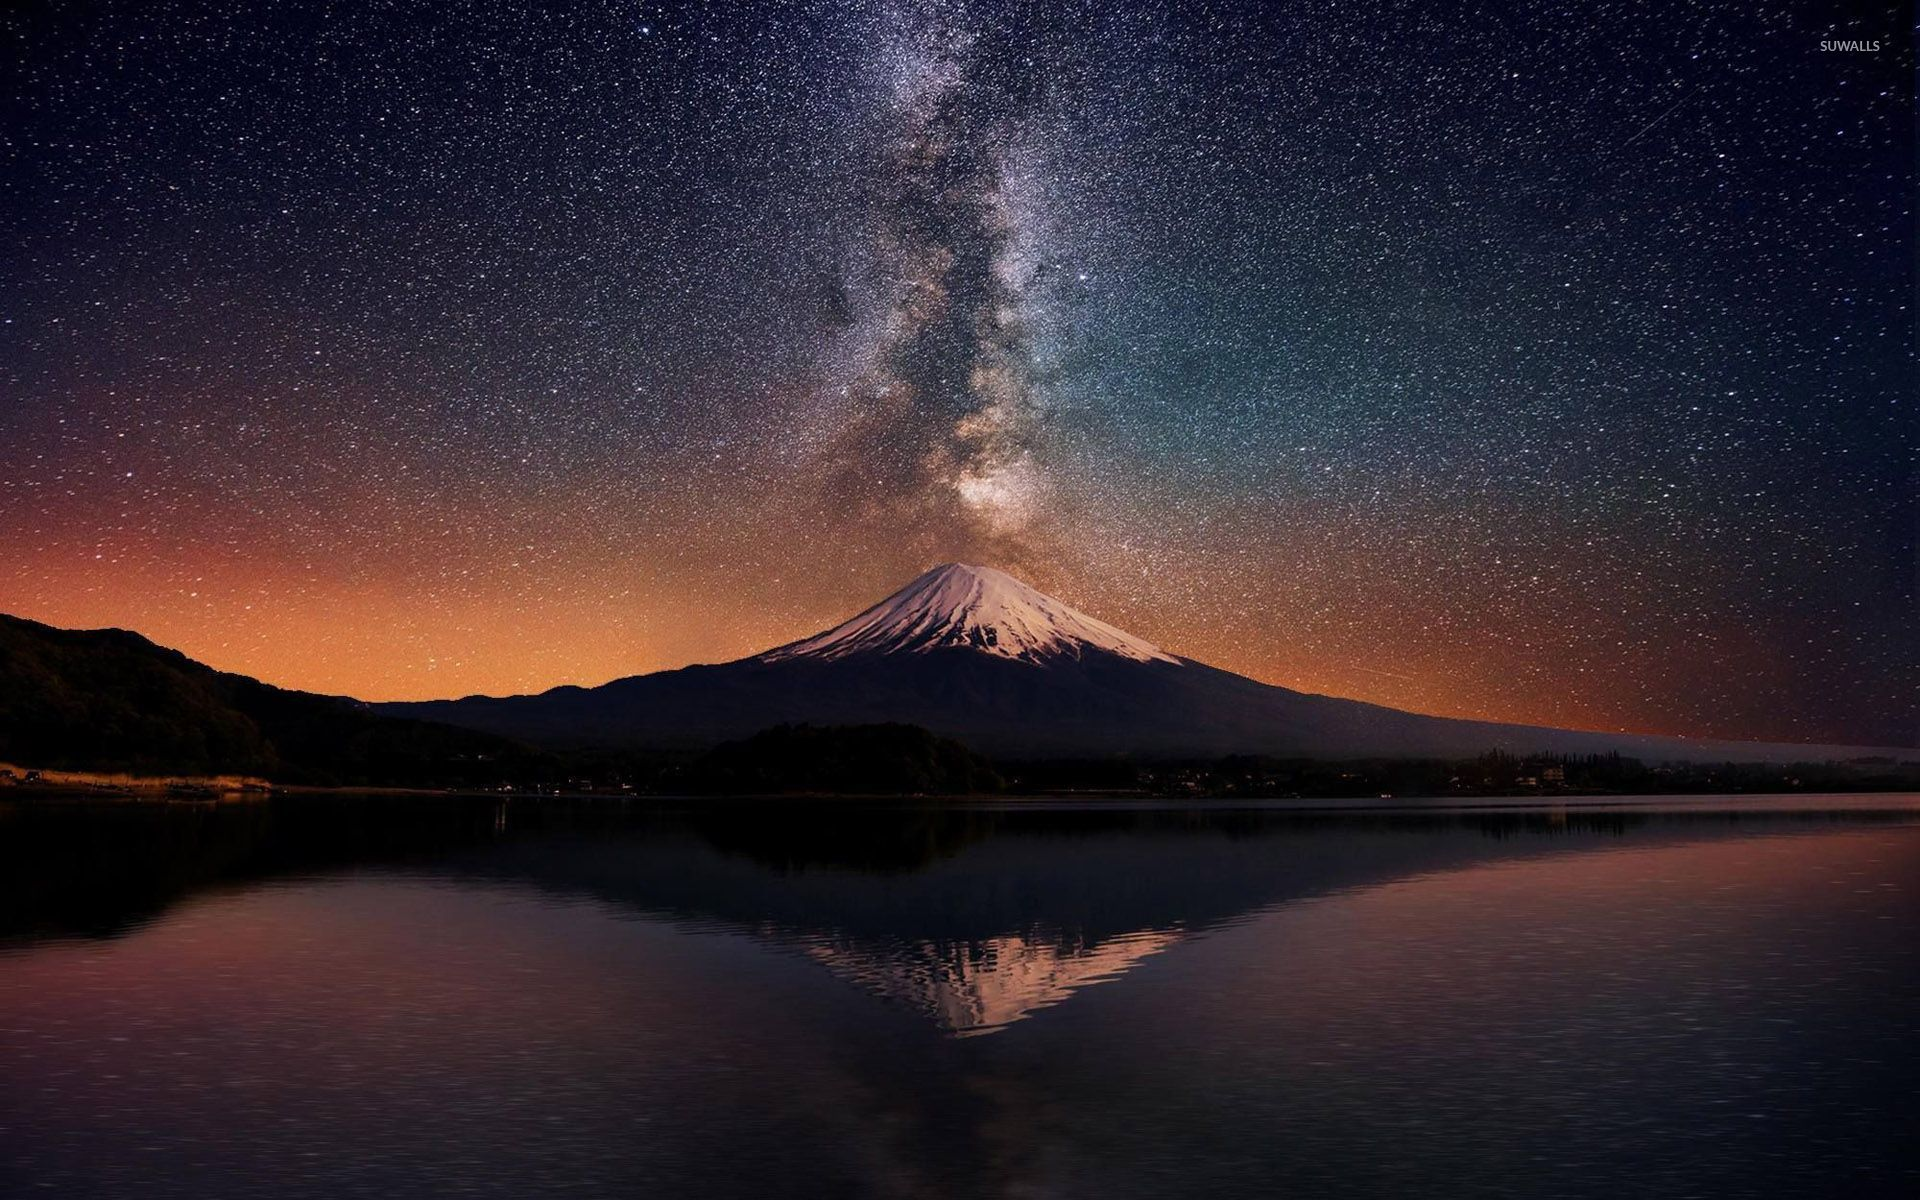 Mount Fuji wallpaper   Nature wallpapers   26726 1920x1200